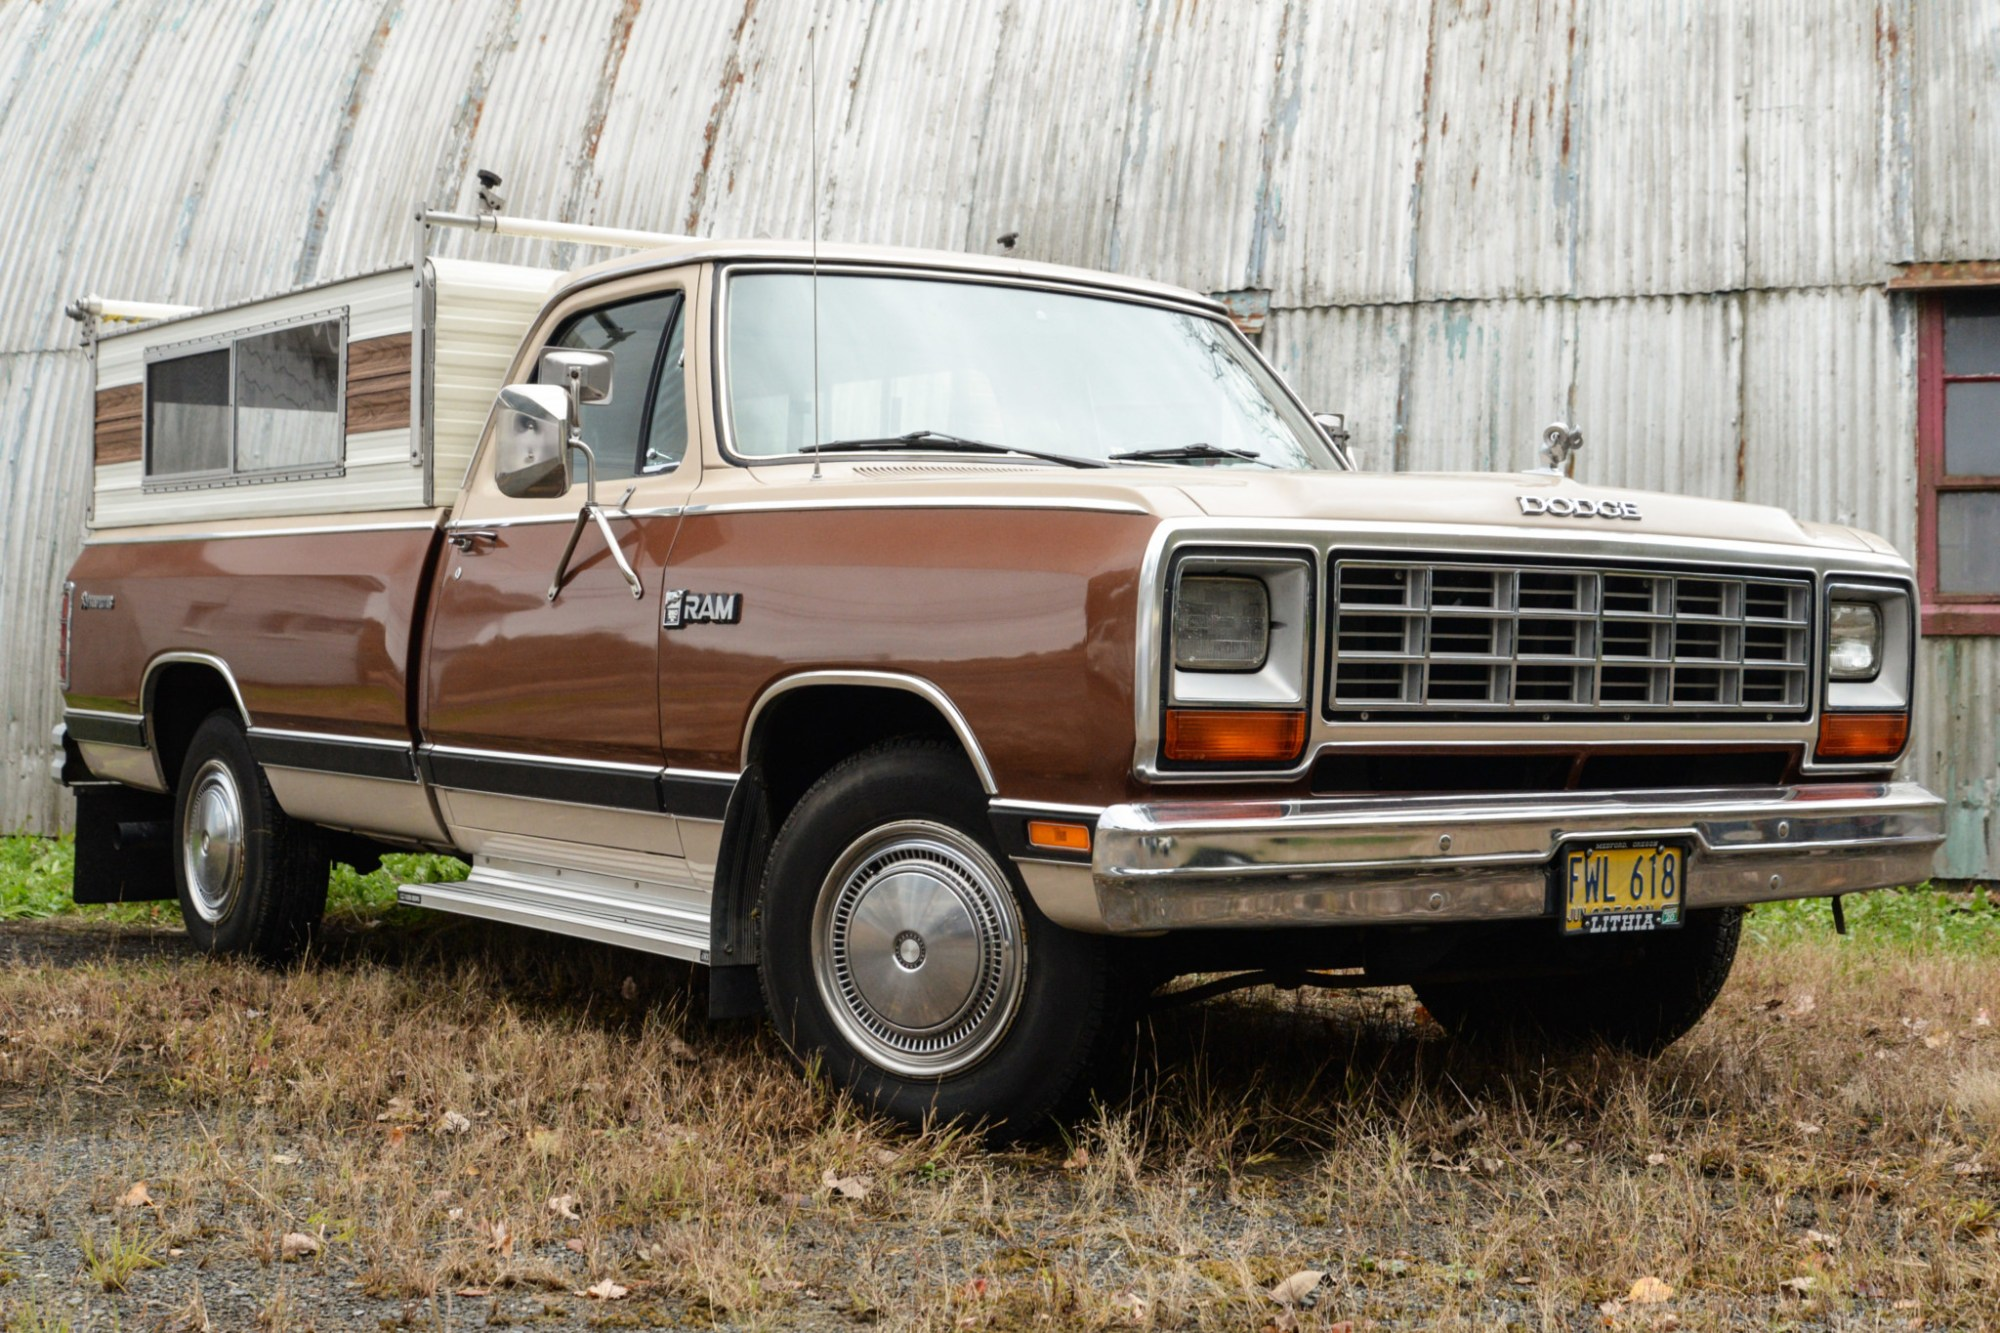 hight resolution of 1984 dodge ram 250 royal se prospector for sale on bat auctions closed on november 16 2018 lot 14 106 bring a trailer